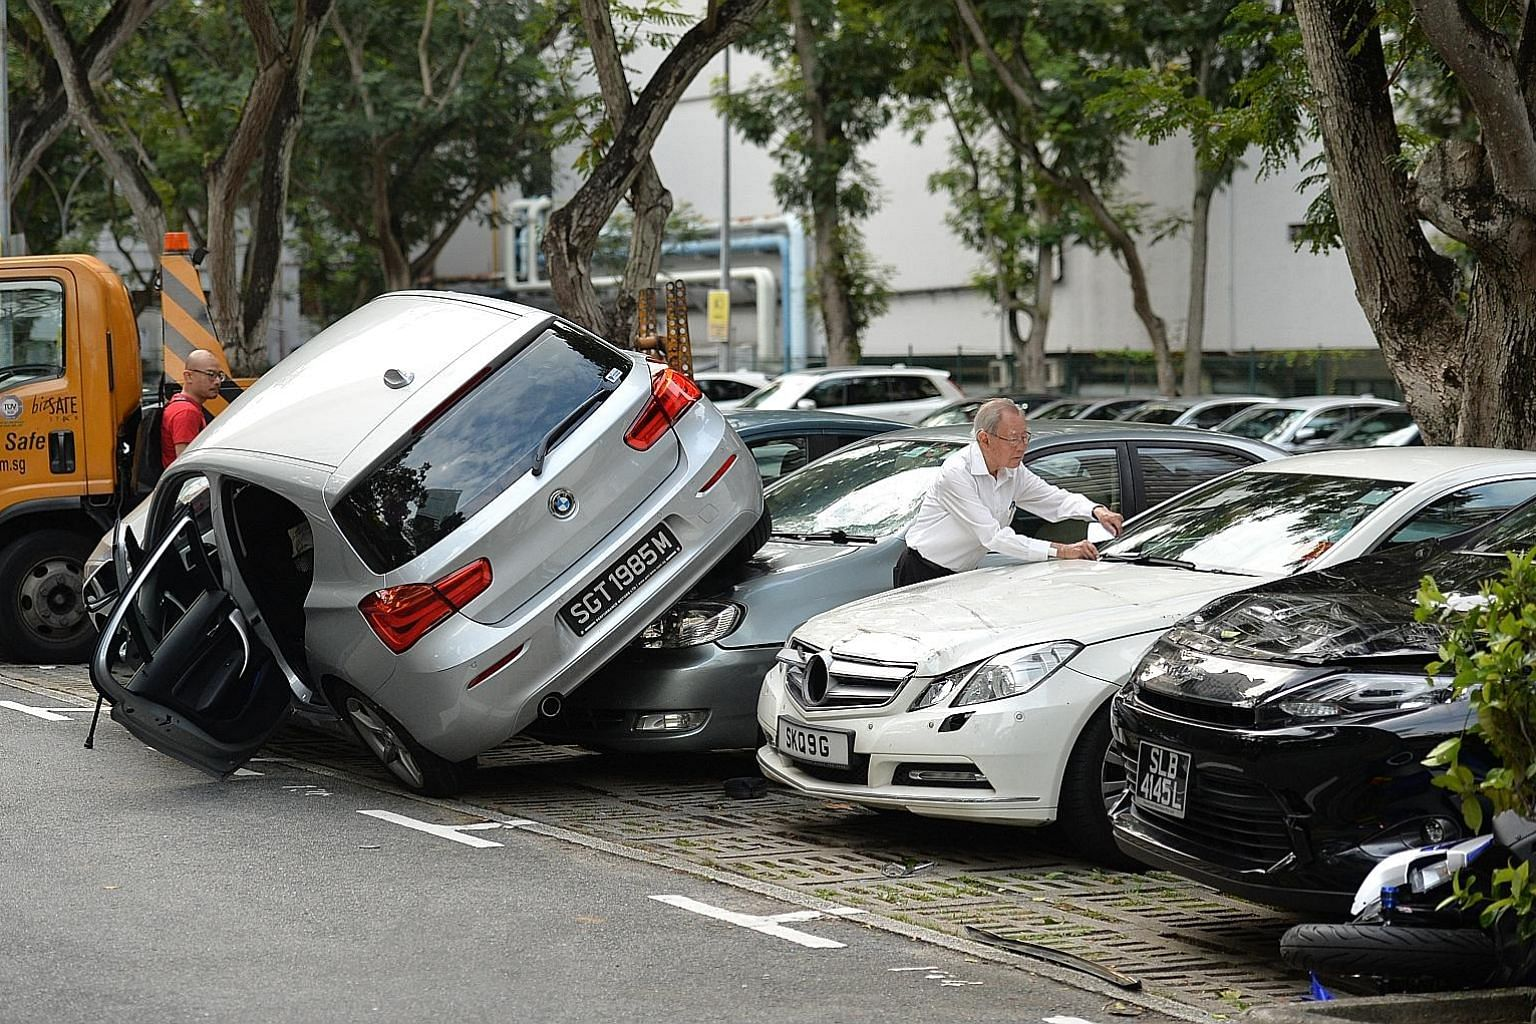 A BMW driven by an elderly woman ended up on two other cars in a carpark next to Wheelock Place at about 4pm yesterday. No injury was reported. The Straits Times understands that the Singapore Civil Defence Force deployed two fire bikes, one red rhin